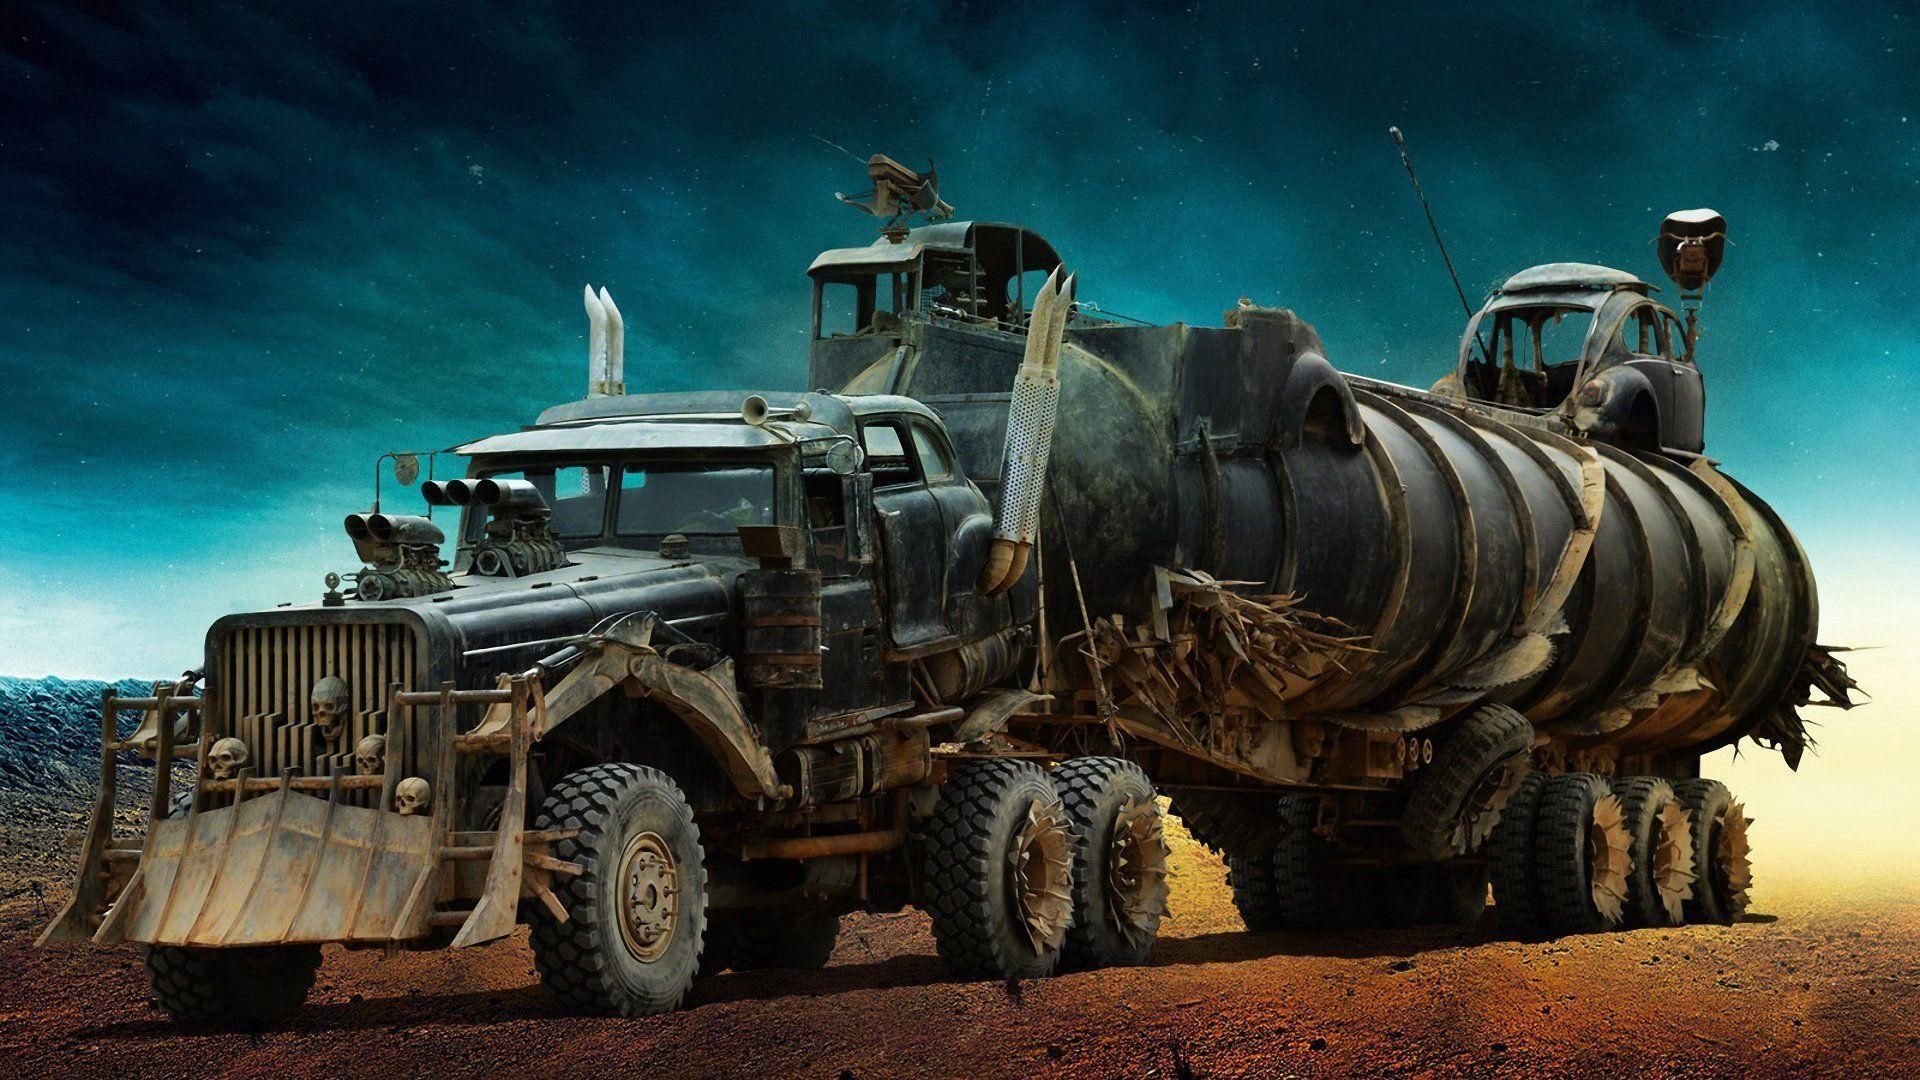 Mad-Max-Fury-Road-cars-for-sale-3